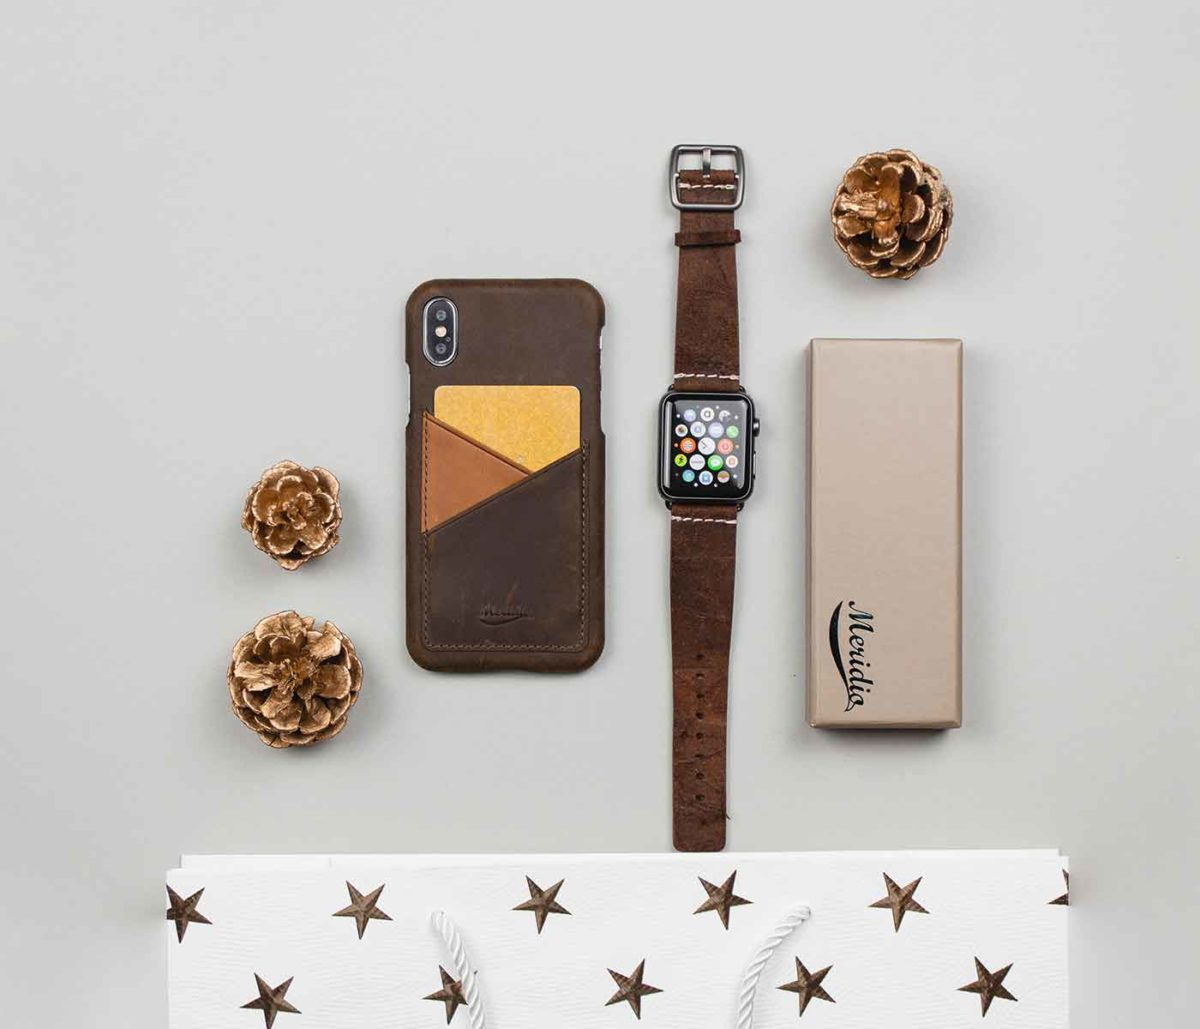 Cottage-Chocolate-and-cigar-iPhone-leather-case-in-a-christmas-mood